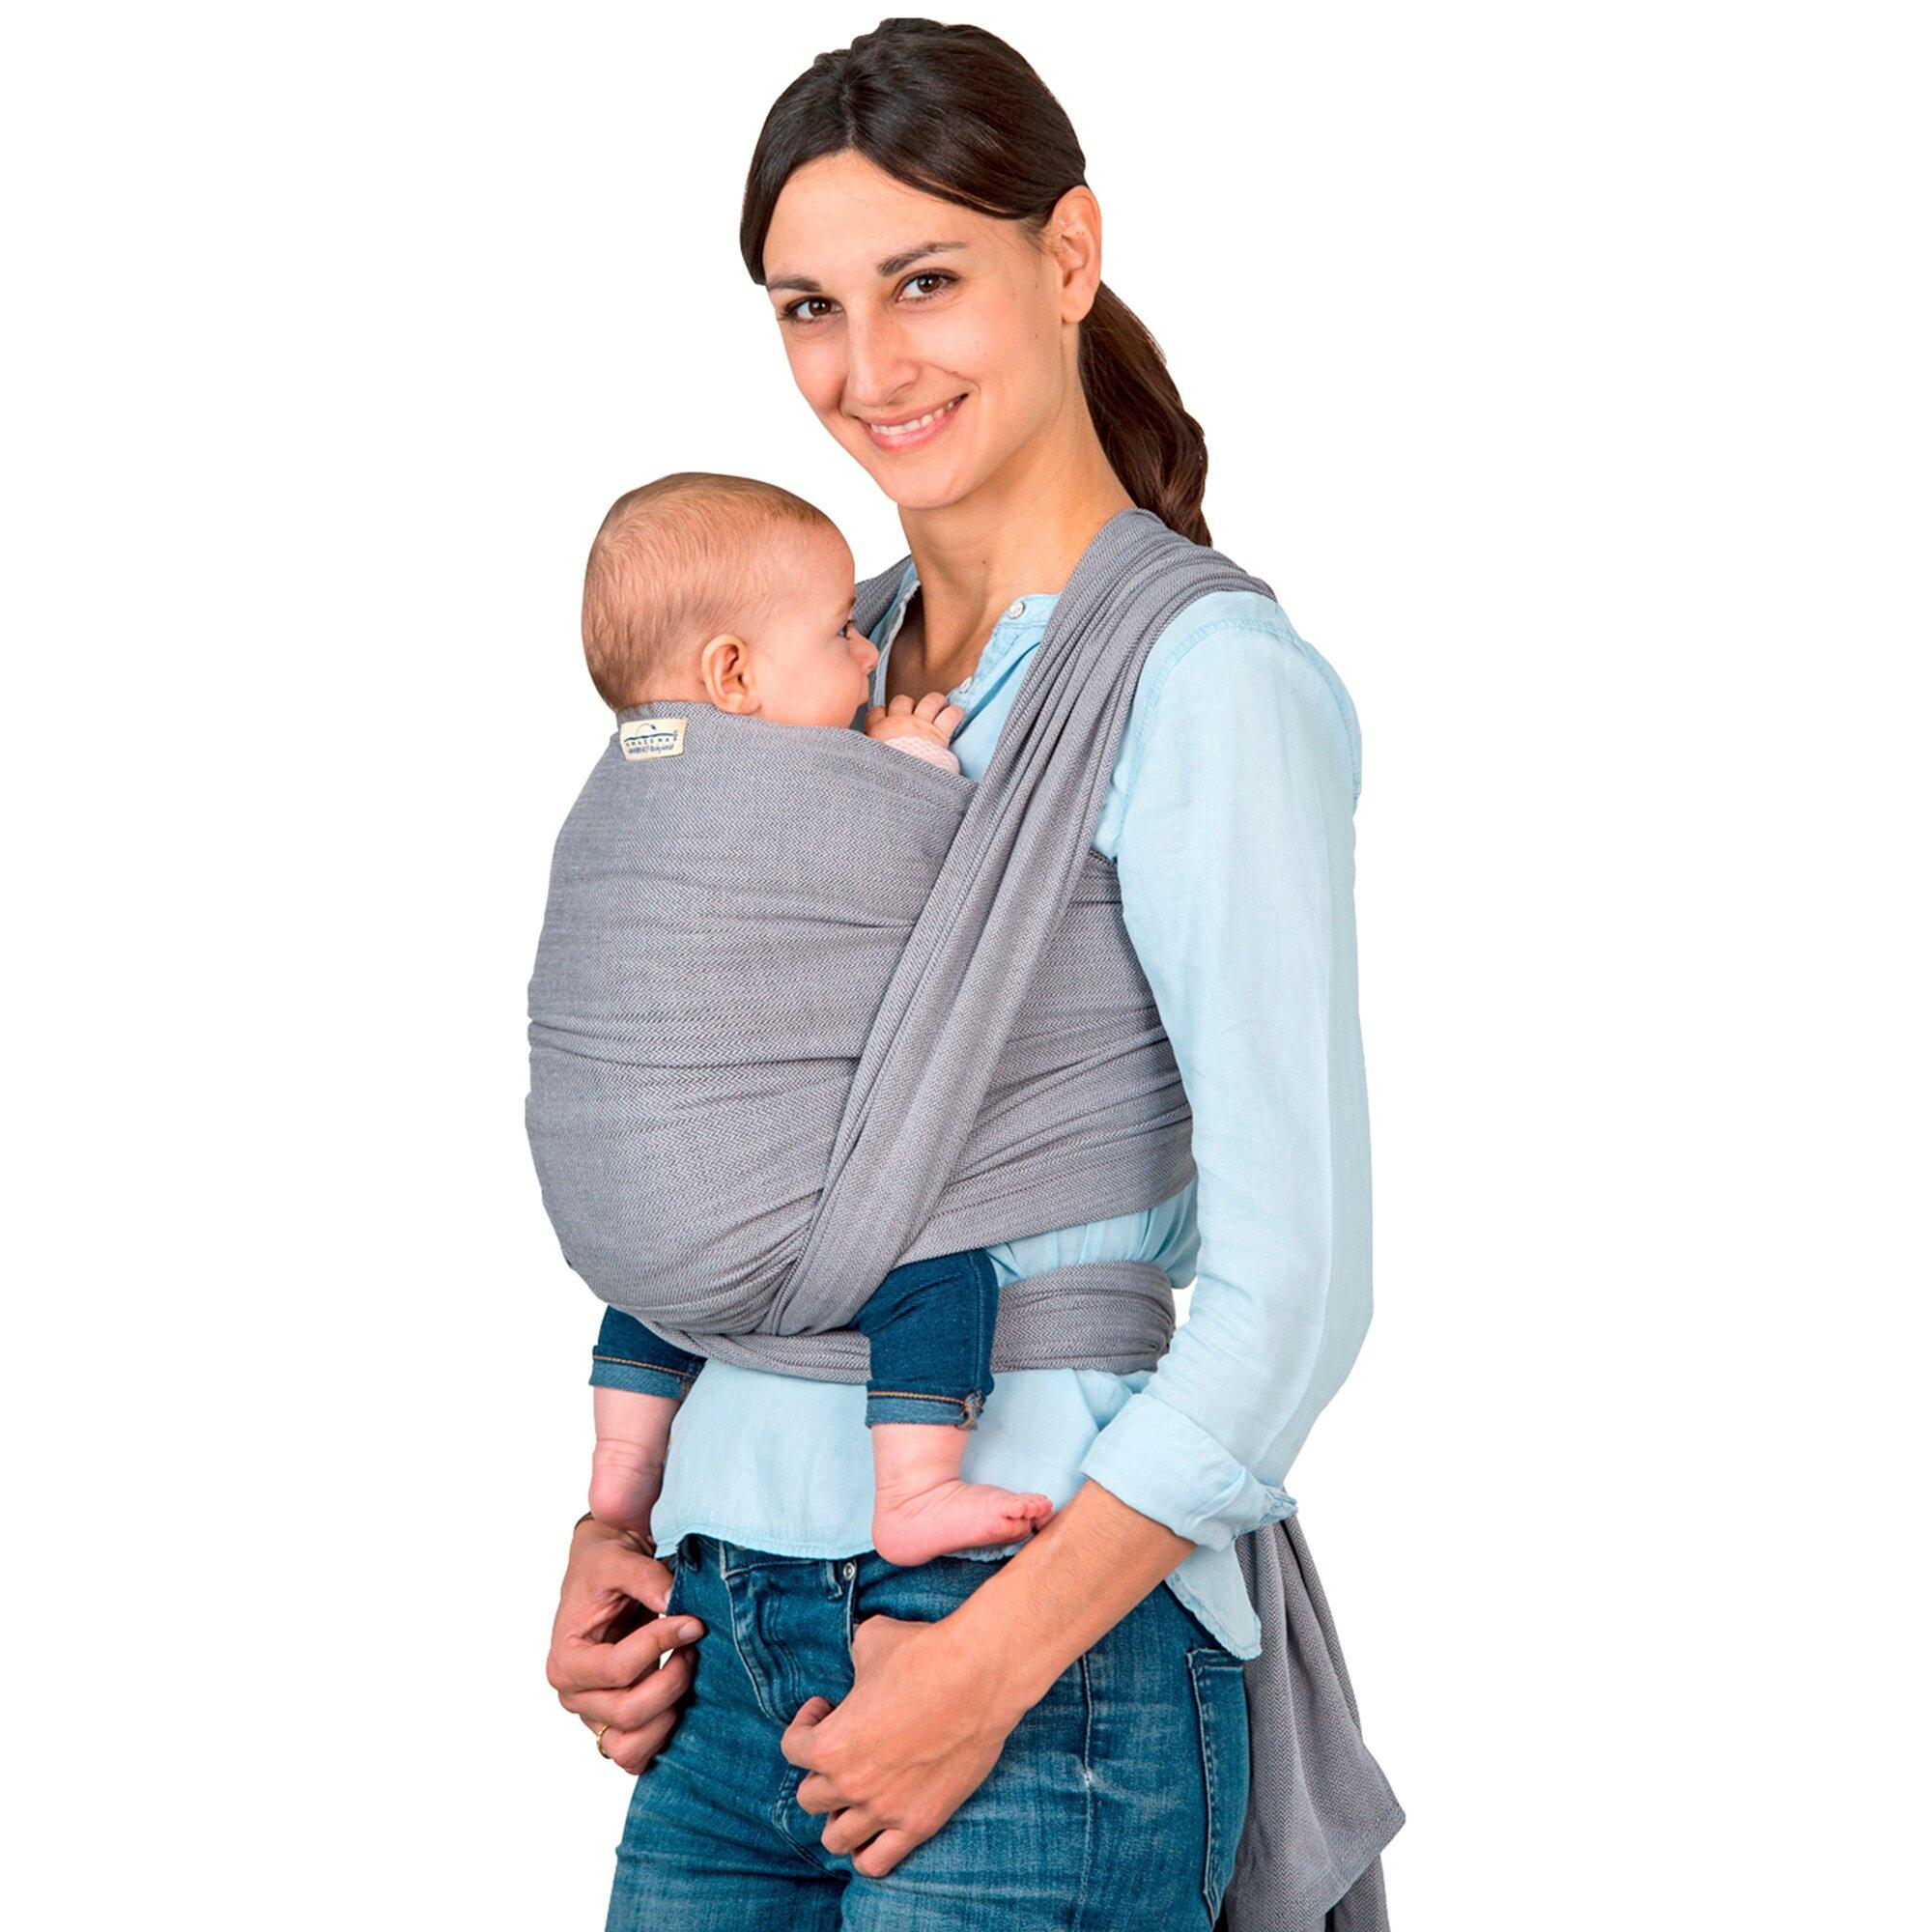 Carry Sling Tragetuch, 450cm